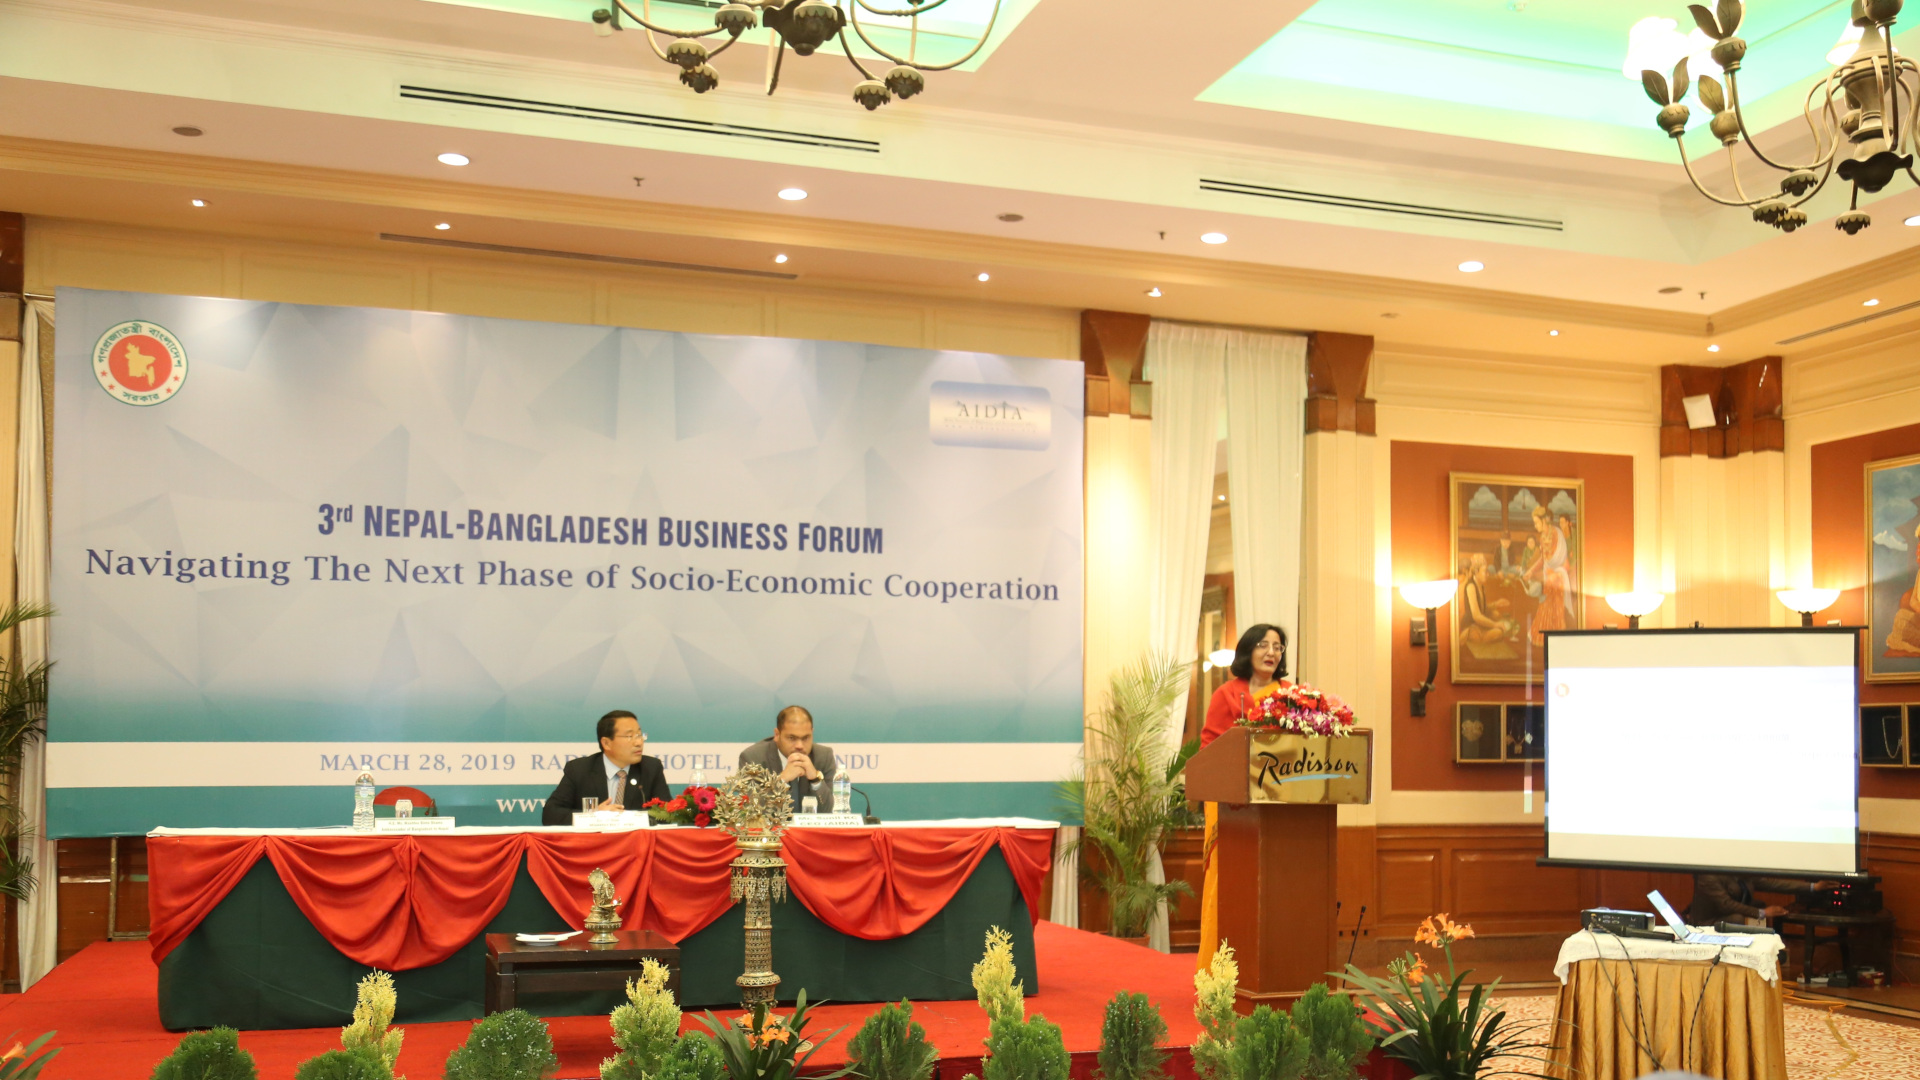 3rd Nepal-Bangladesh Business Forum